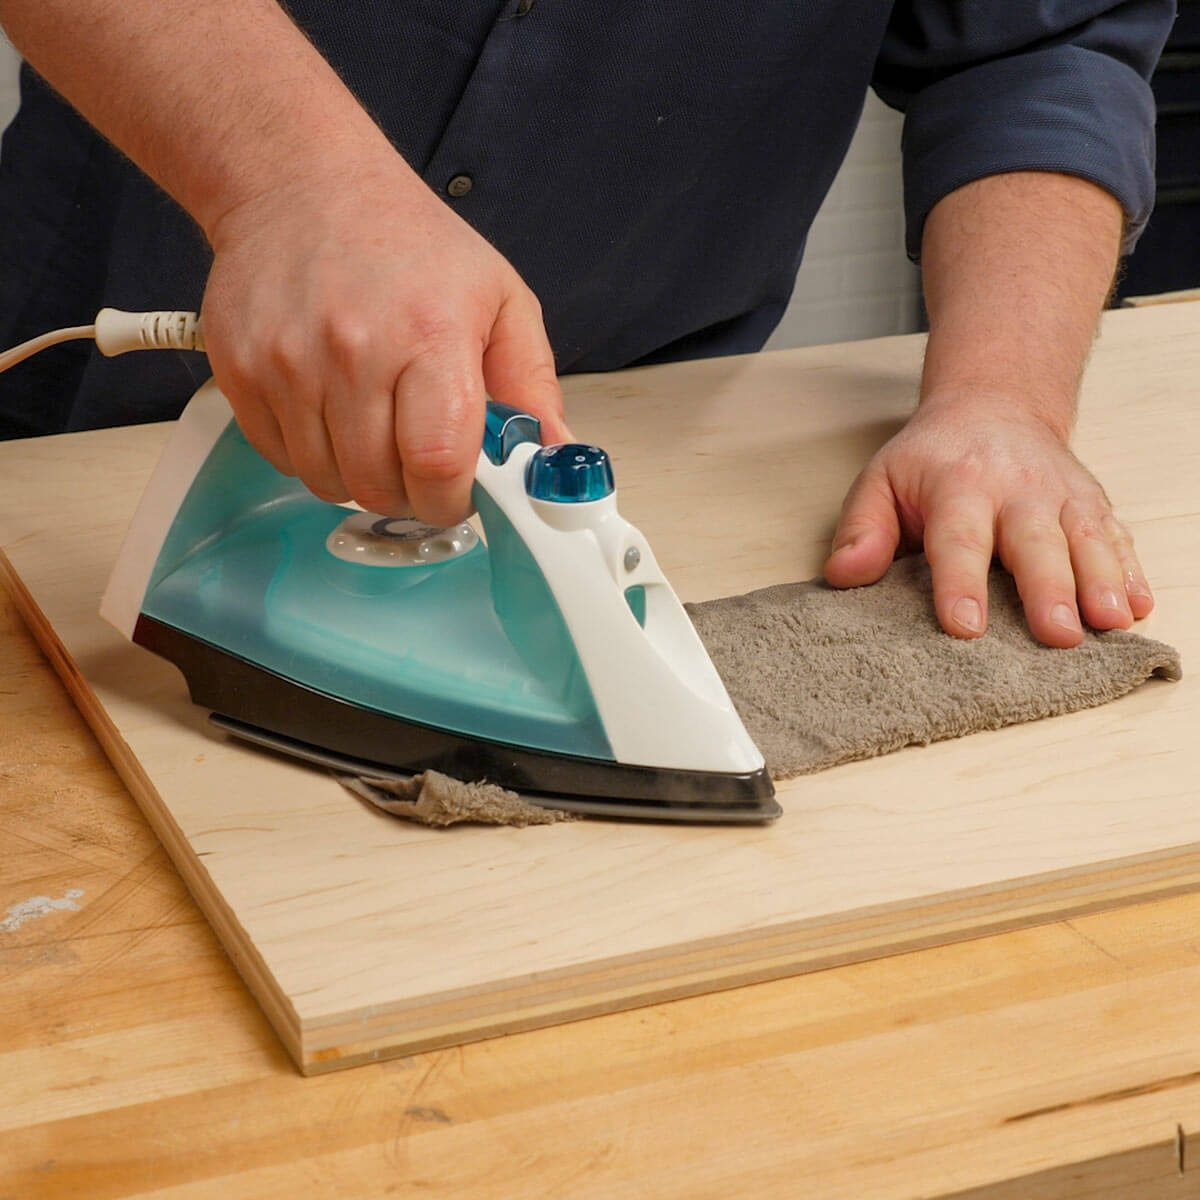 How to Get Dents Out of Wood